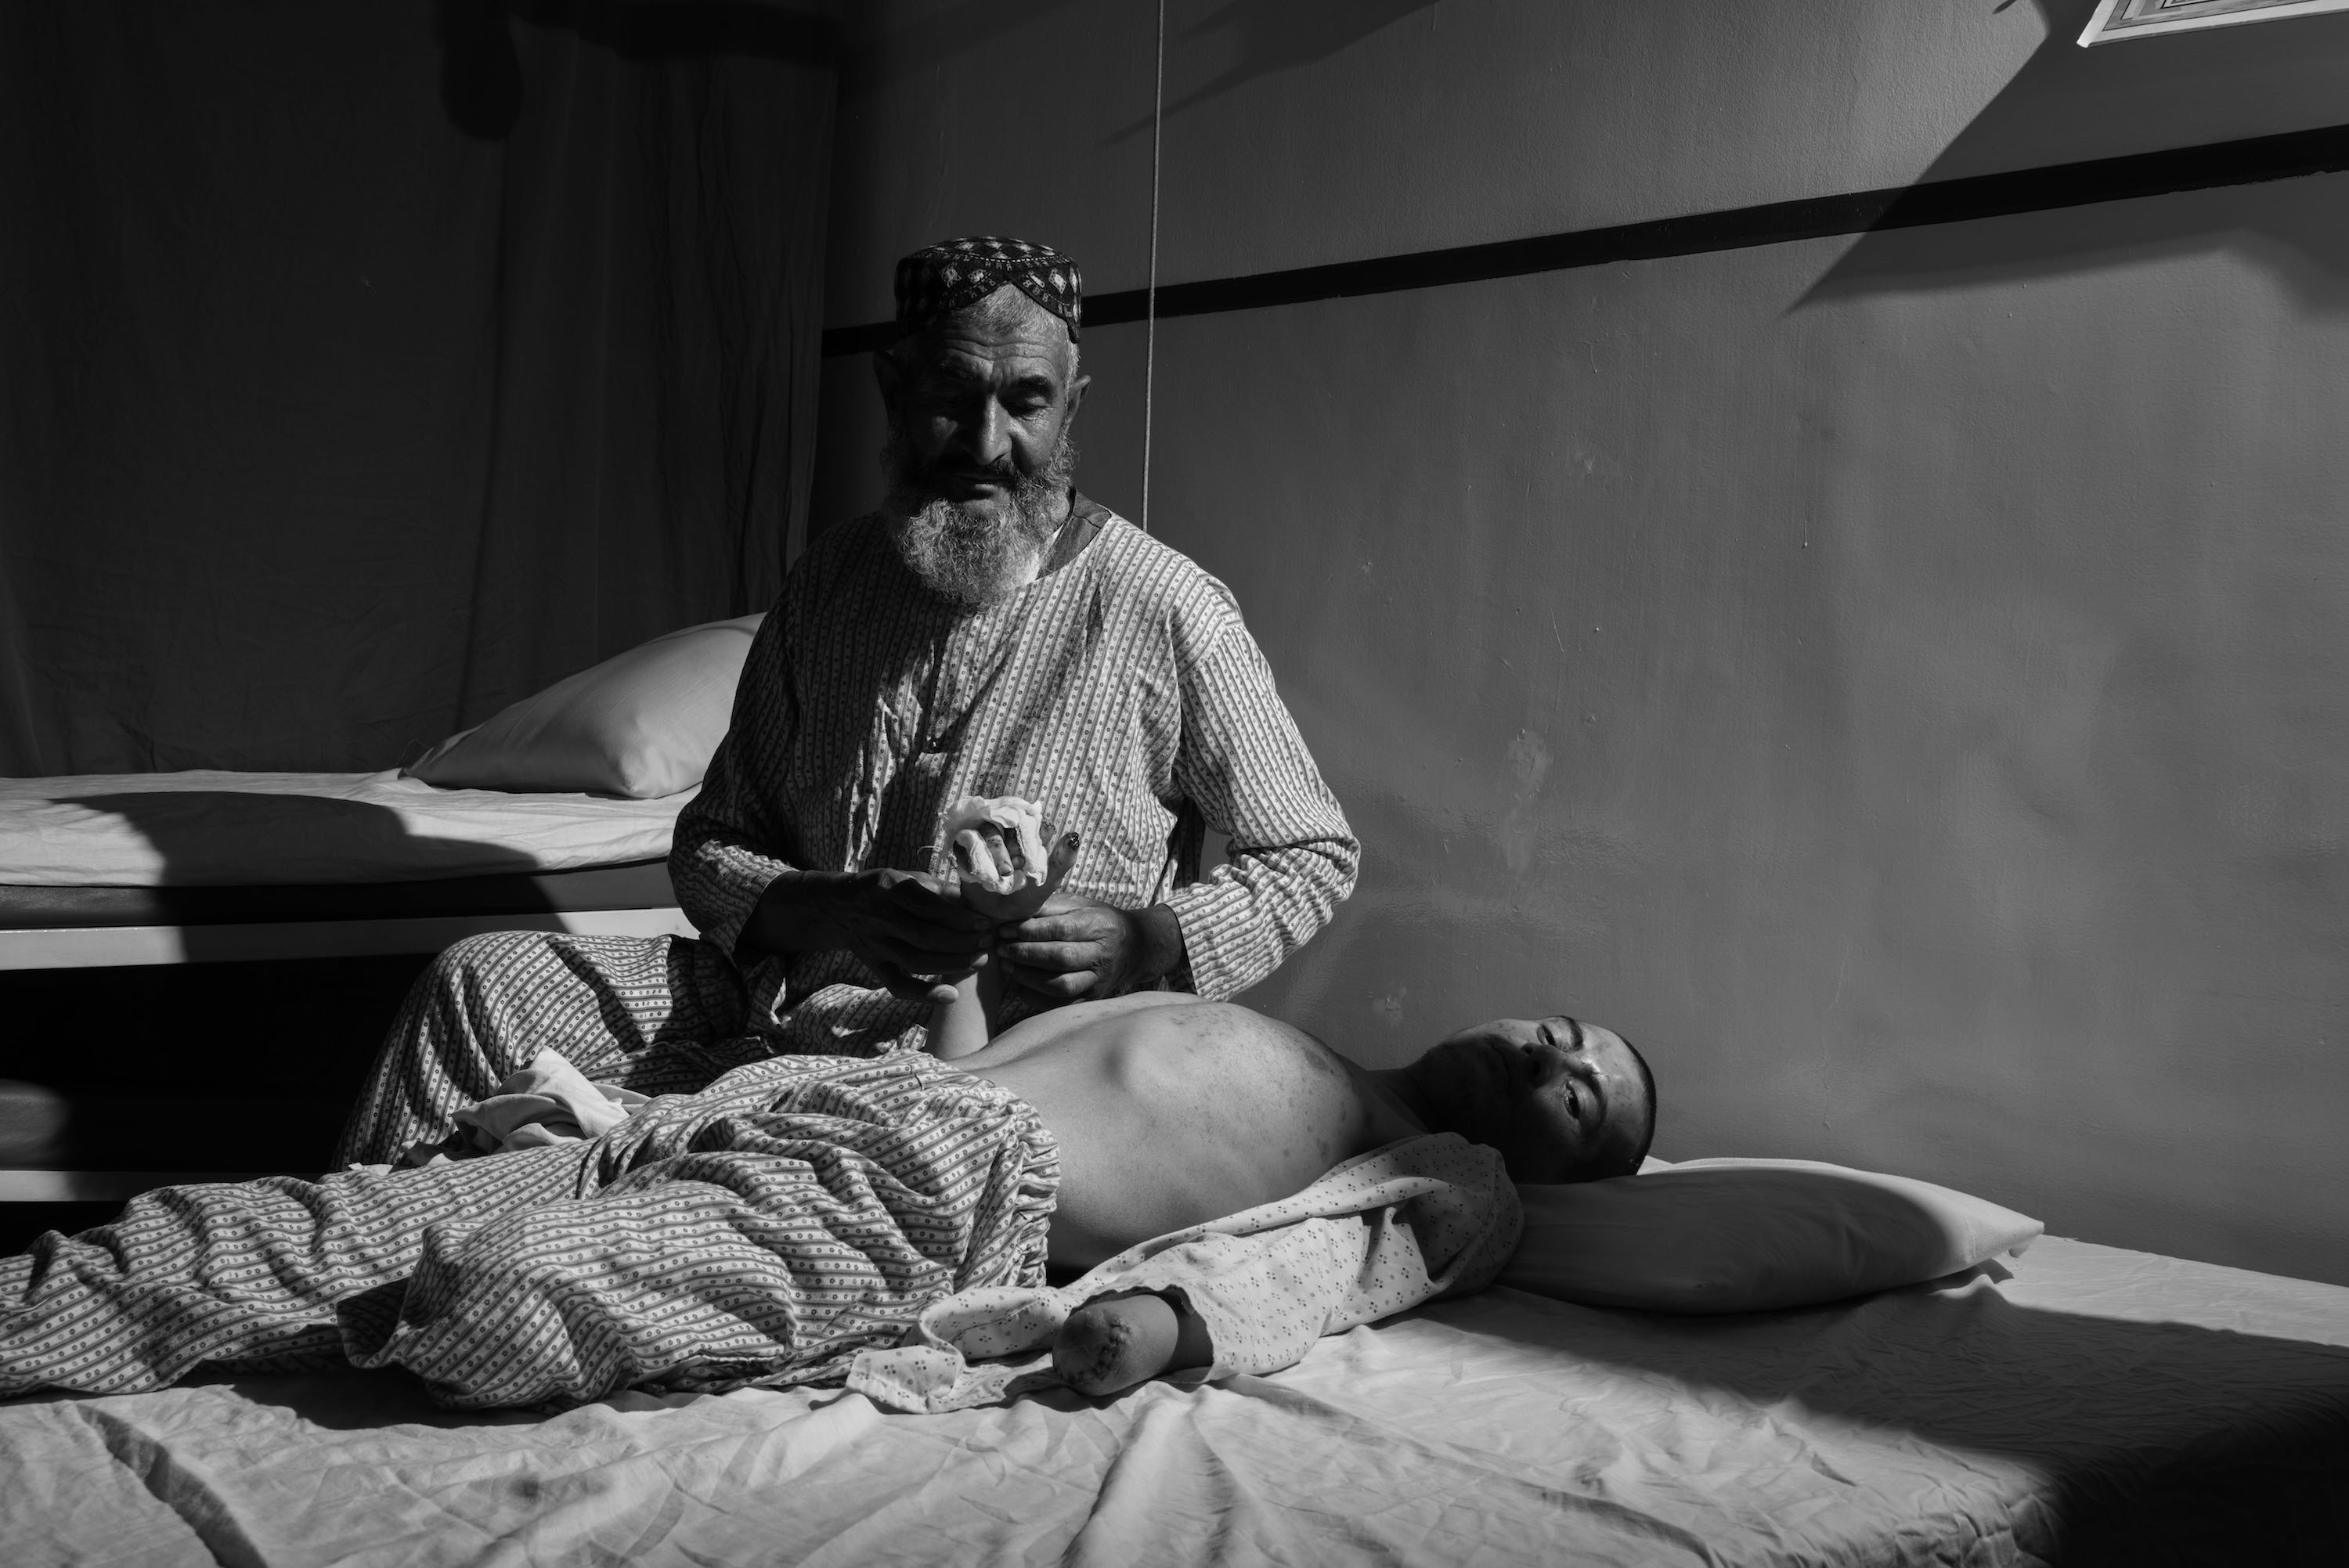 A father at his son's hospital bare hospital bed